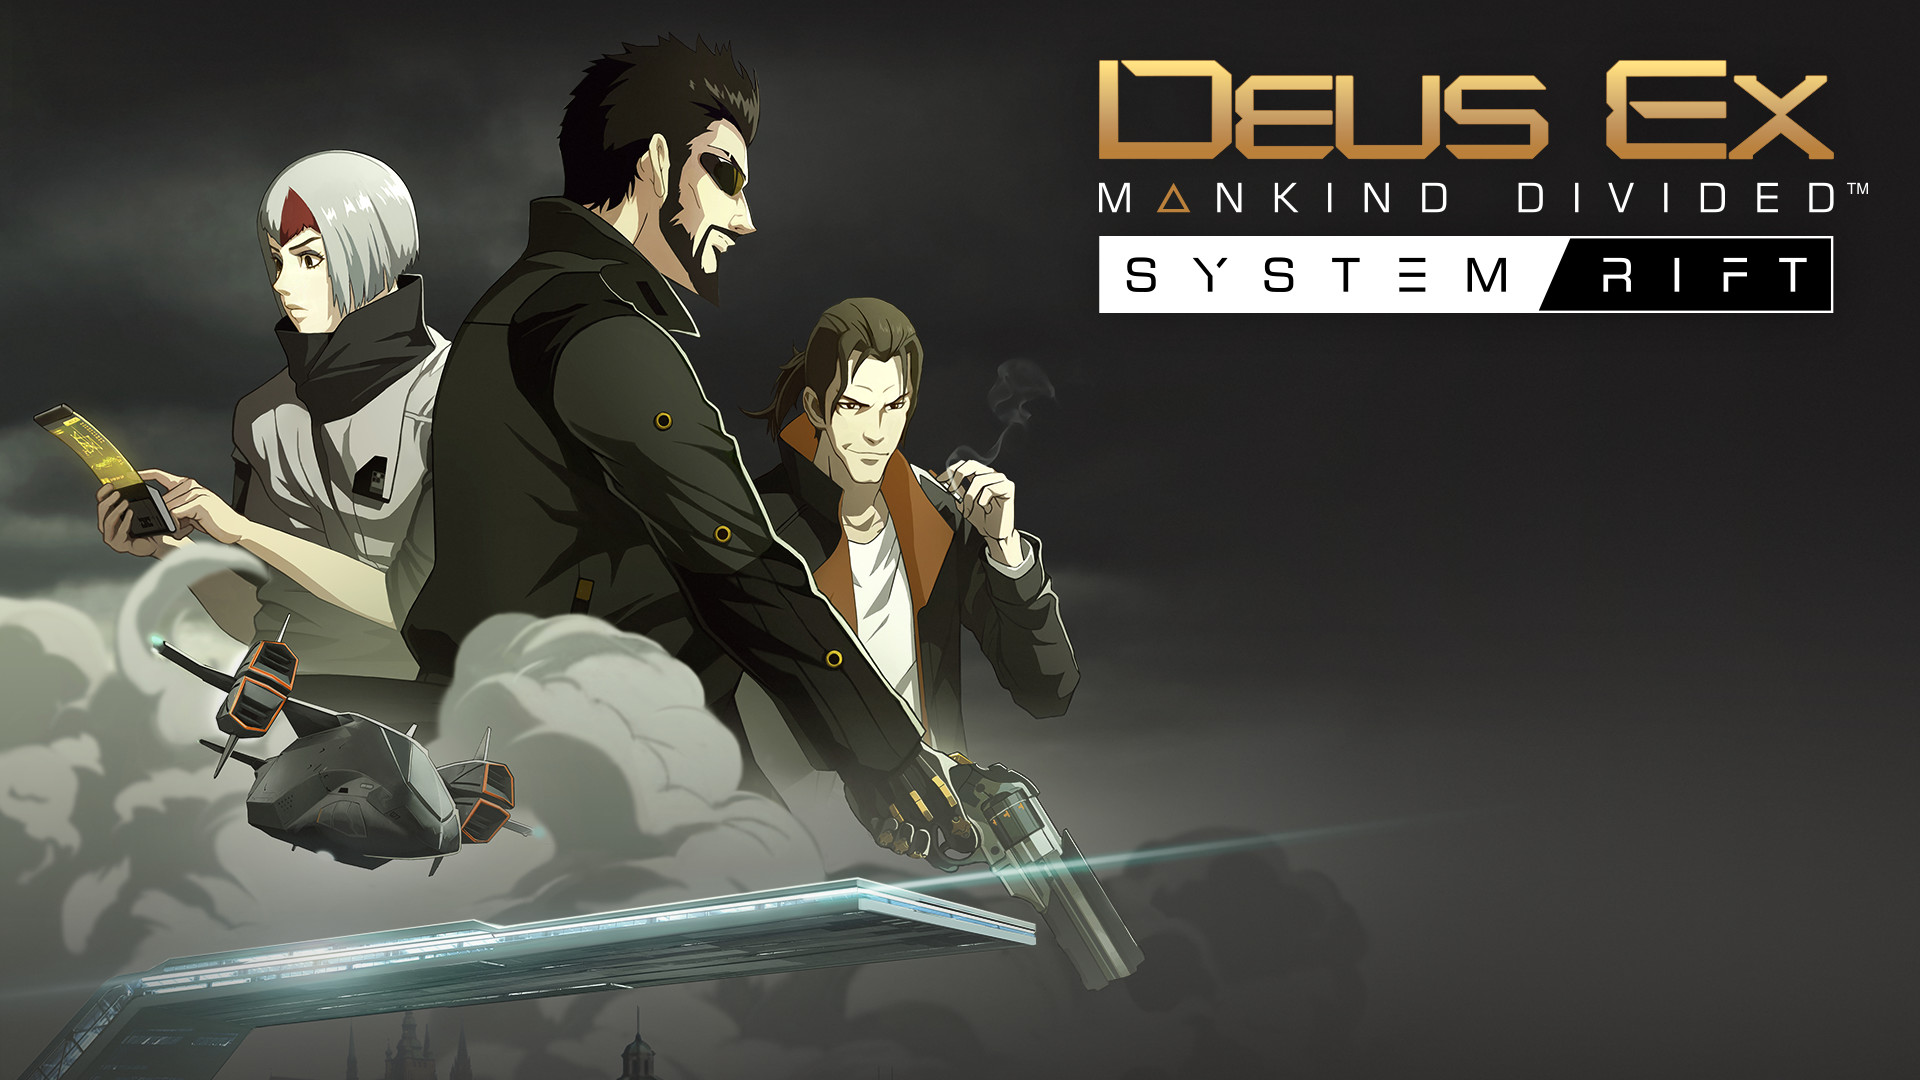 Mankind Divided Release